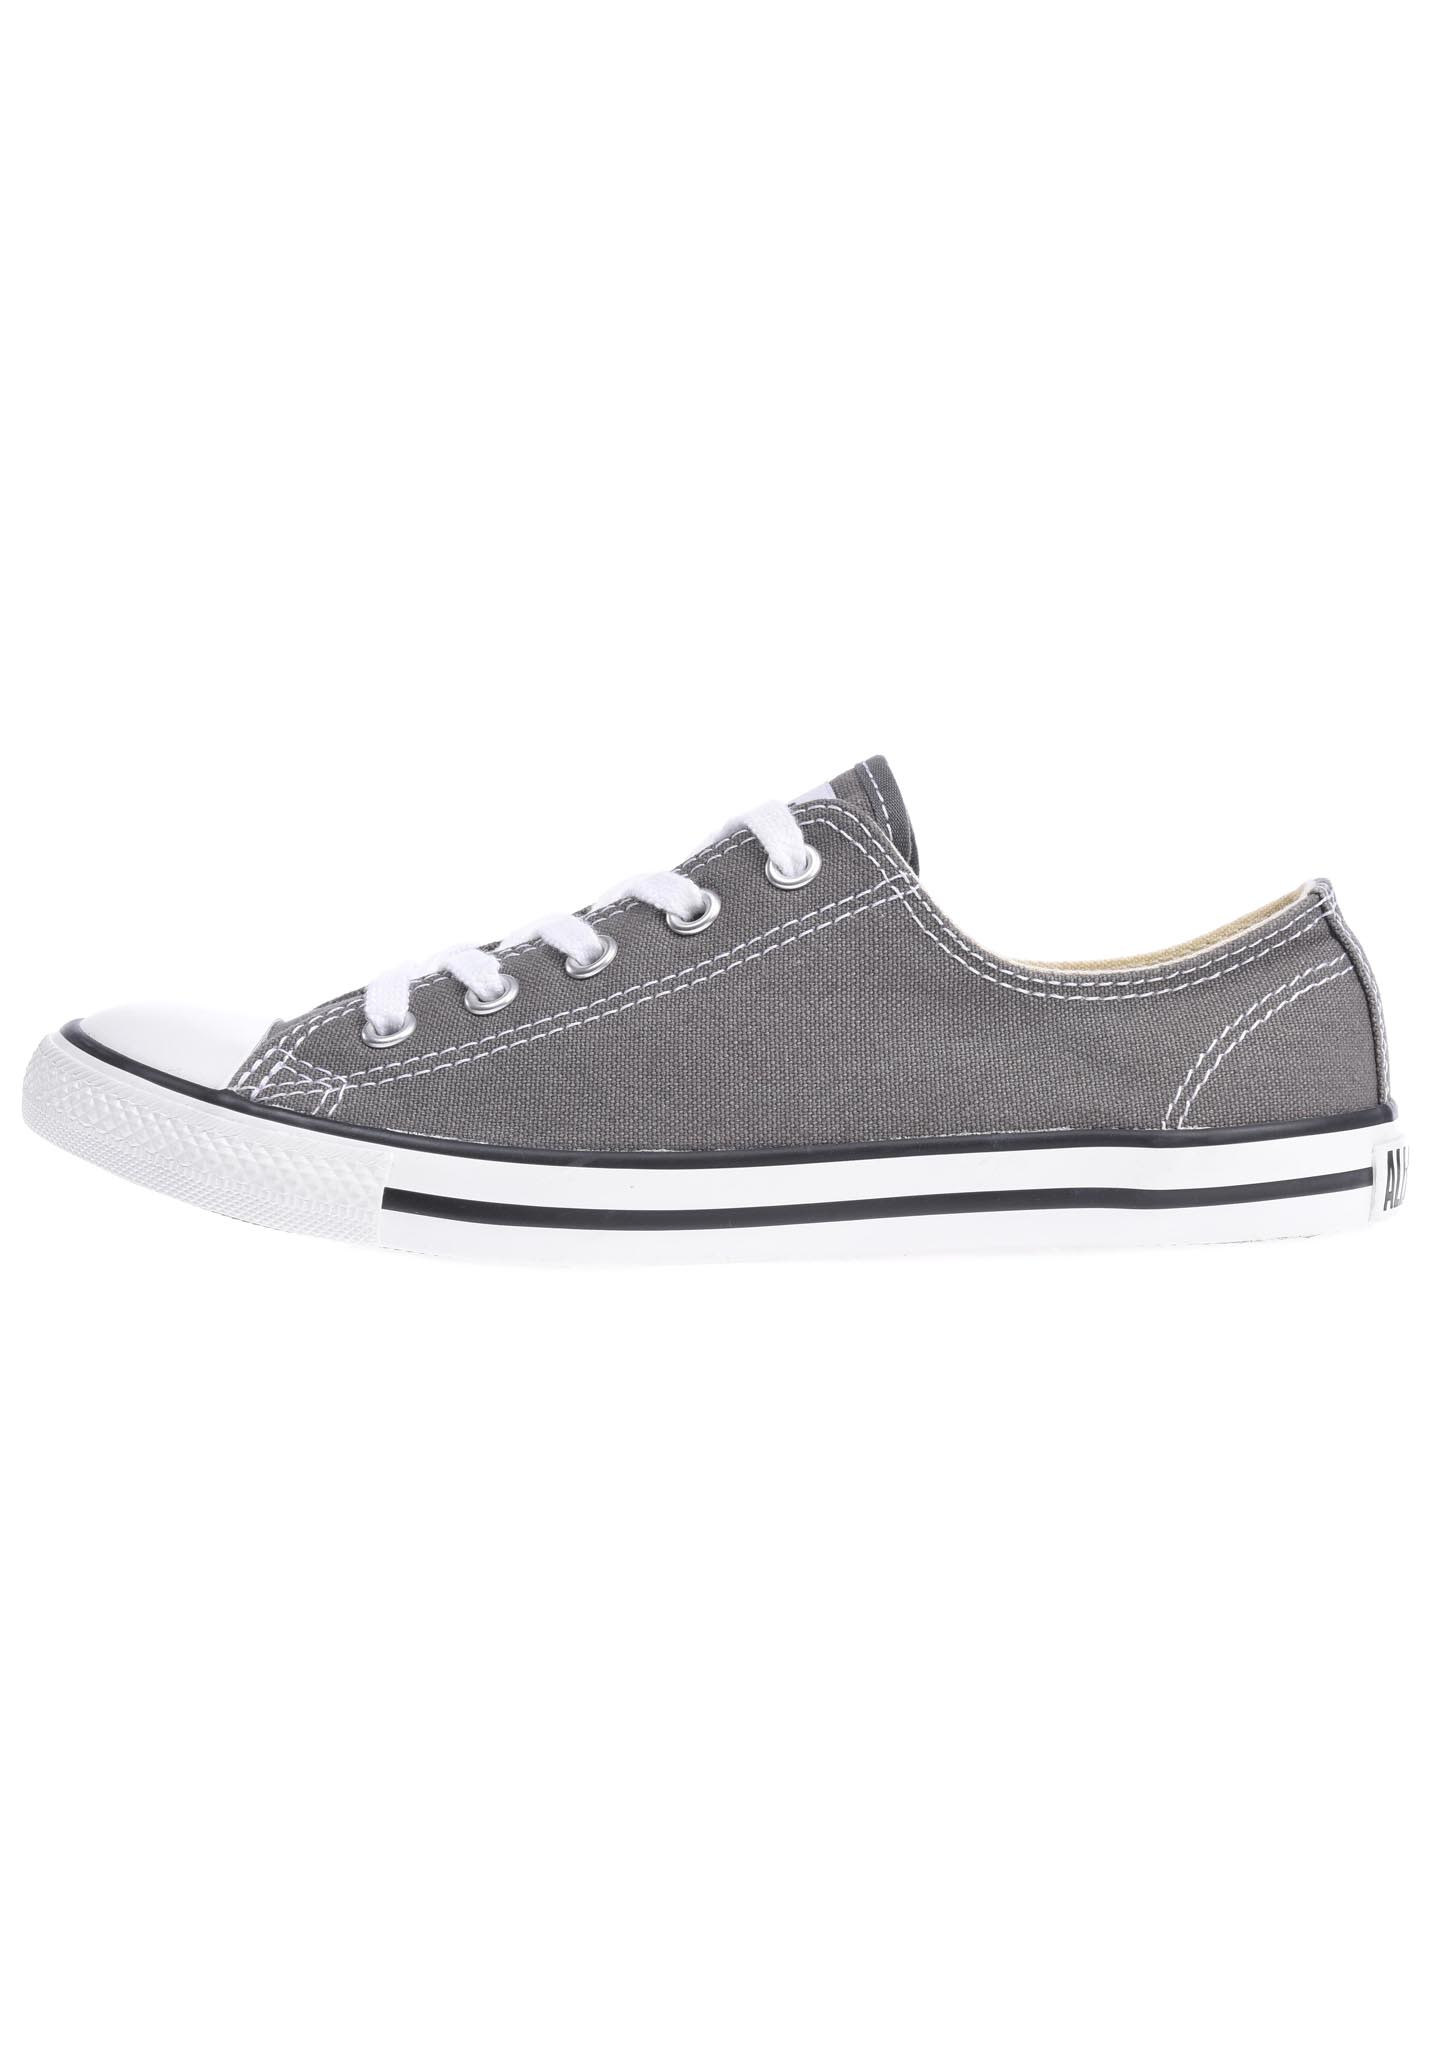 Converse Chuck Taylor All Star Dainty Ox - Sneakers for Women - Grey ff99194ef6